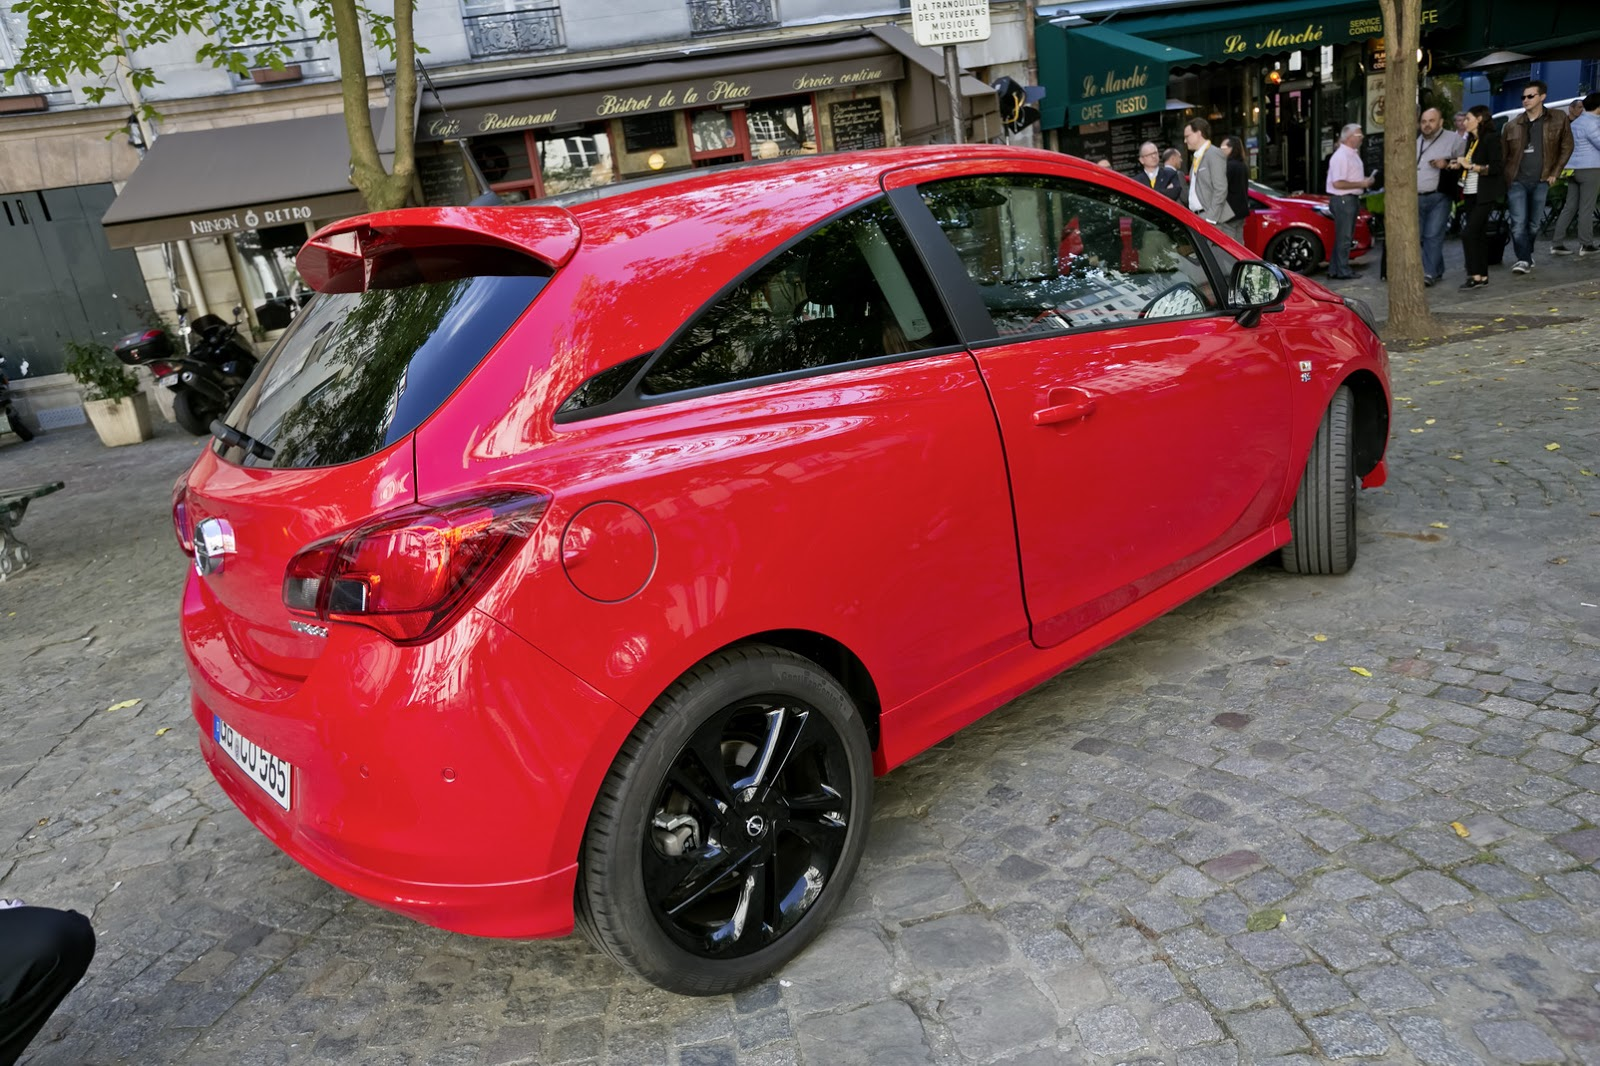 new opel corsa hits paris debuts alongside claudia schiffer carscoops. Black Bedroom Furniture Sets. Home Design Ideas